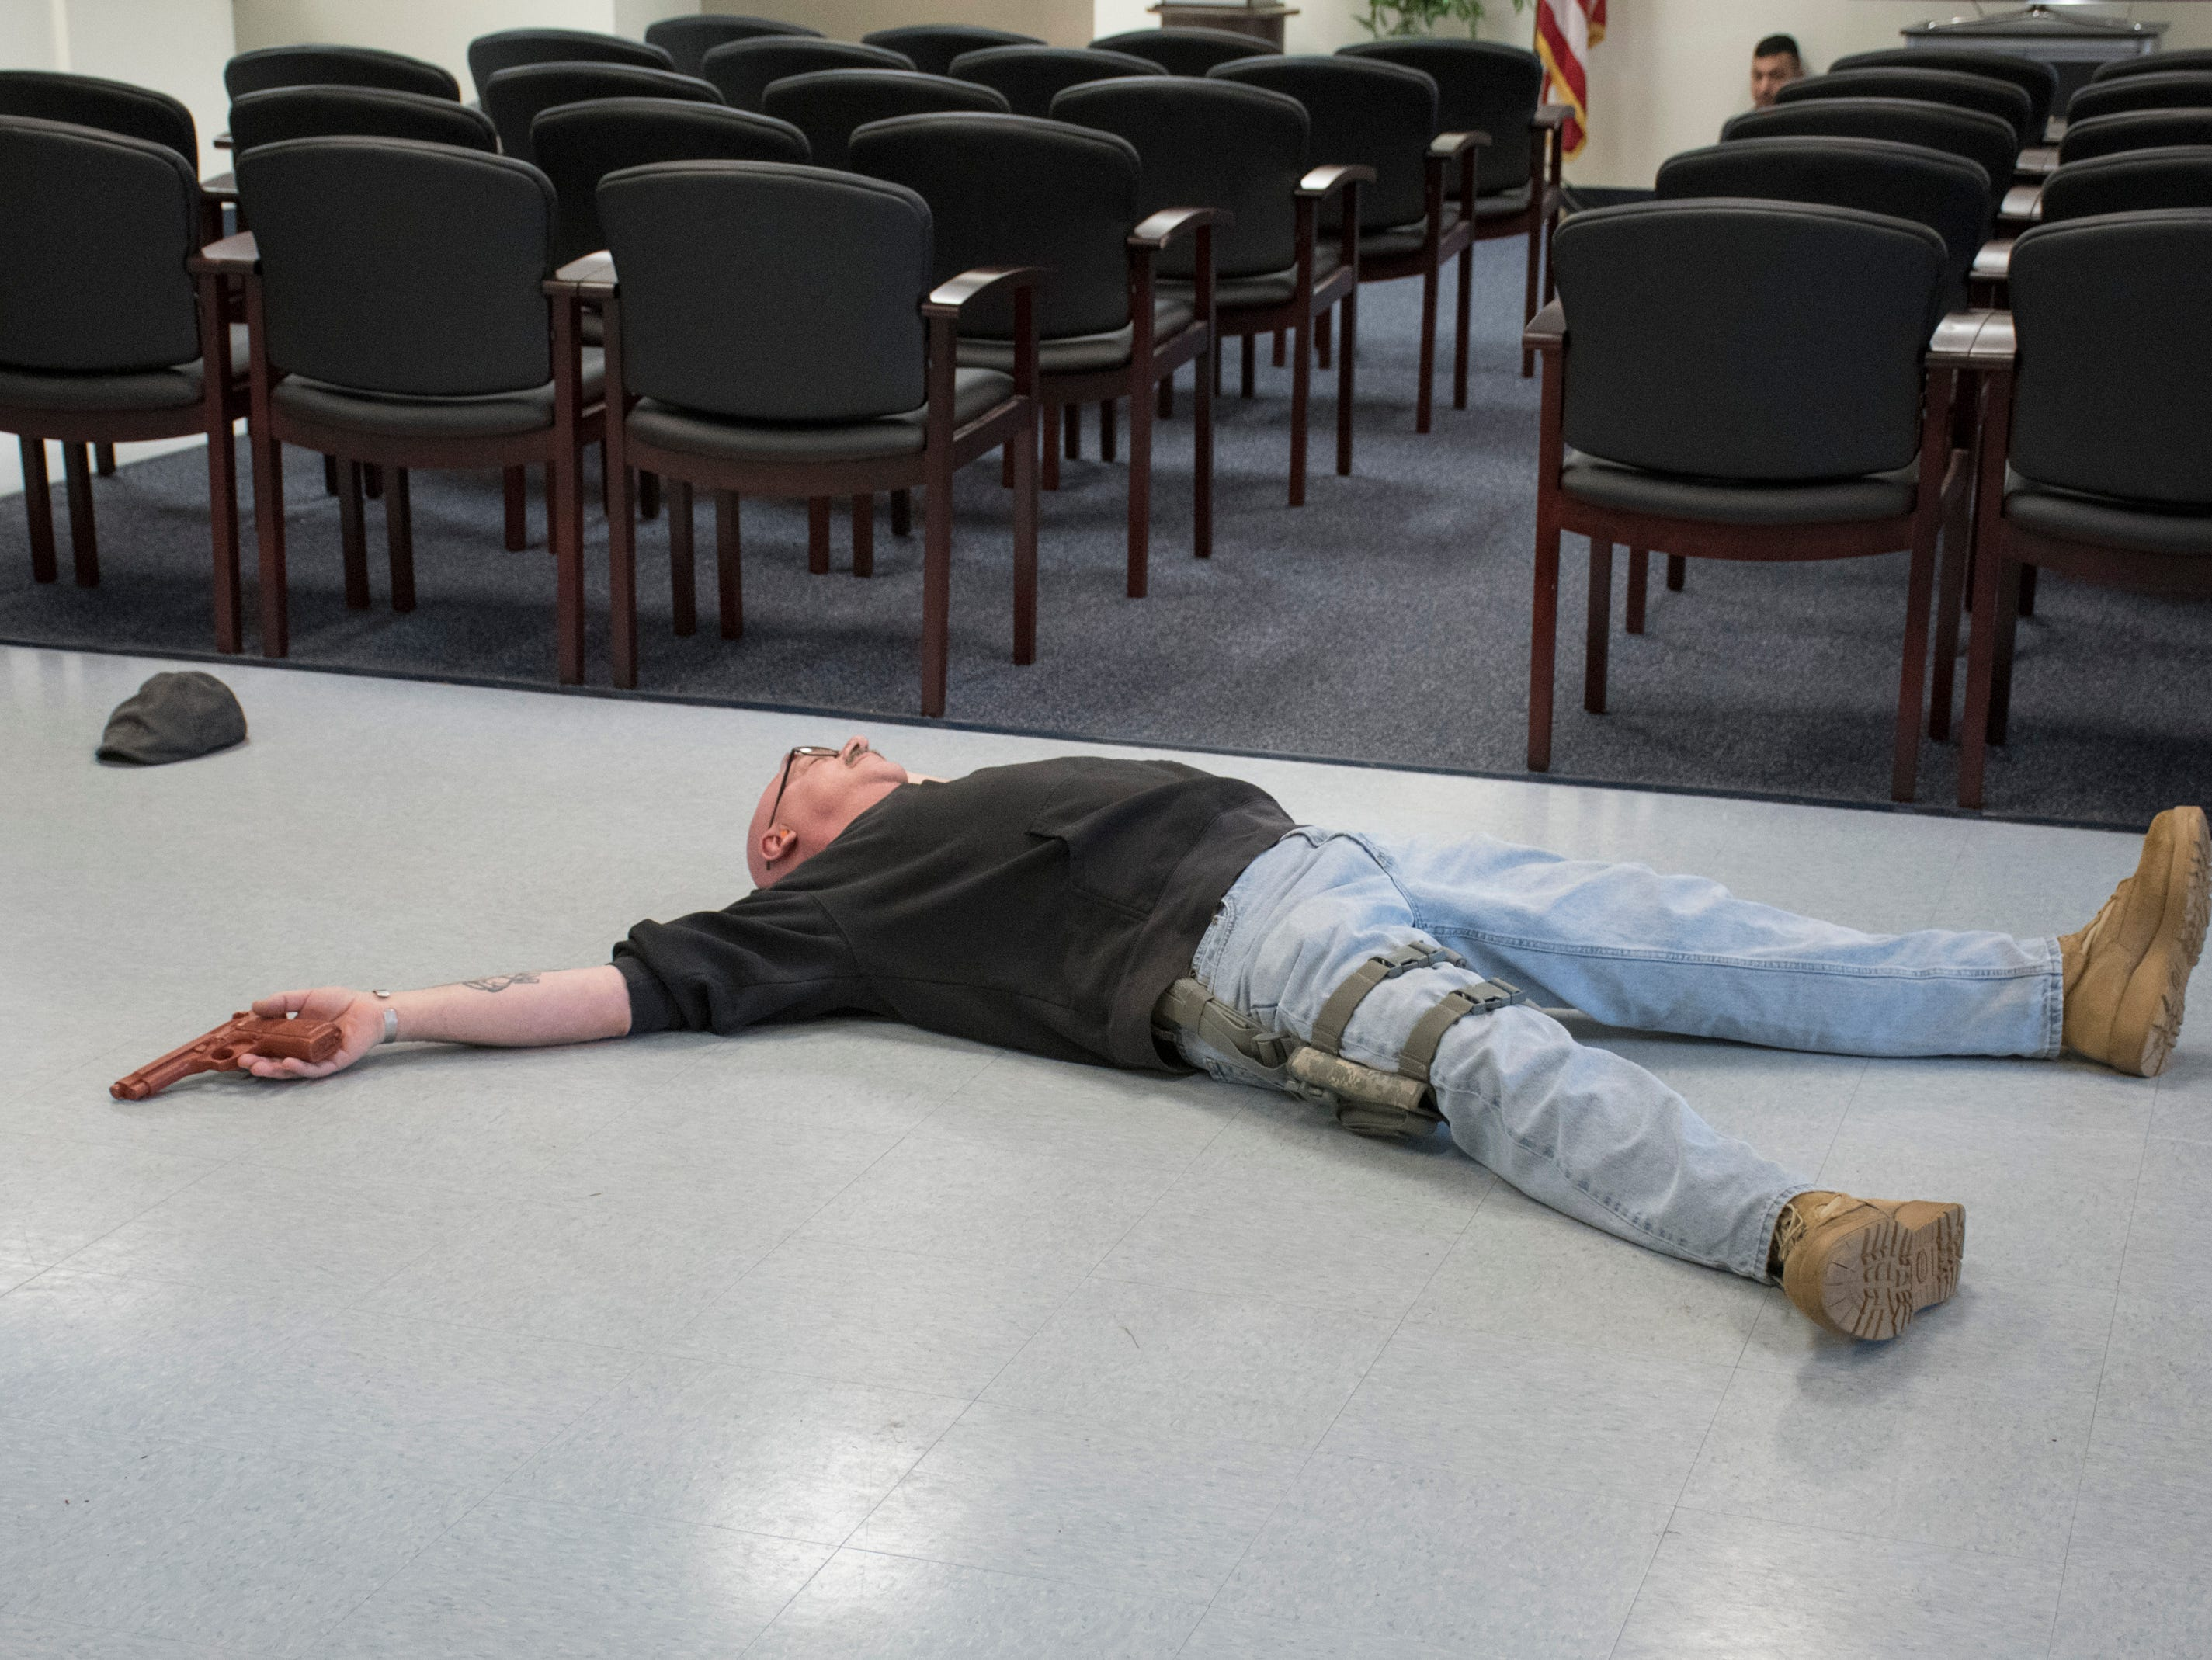 Portraying an armed intruder,  Senior Chief Aviation Structural Mechanic Pasquale Moreland lays on the ground after being shot in the Personnel Support Detachment building during Exercise Solid Curtain-Citadel Shield, an annual security exercise is conducted at NAS Pensacola on Tuesday, February 4, 2019.